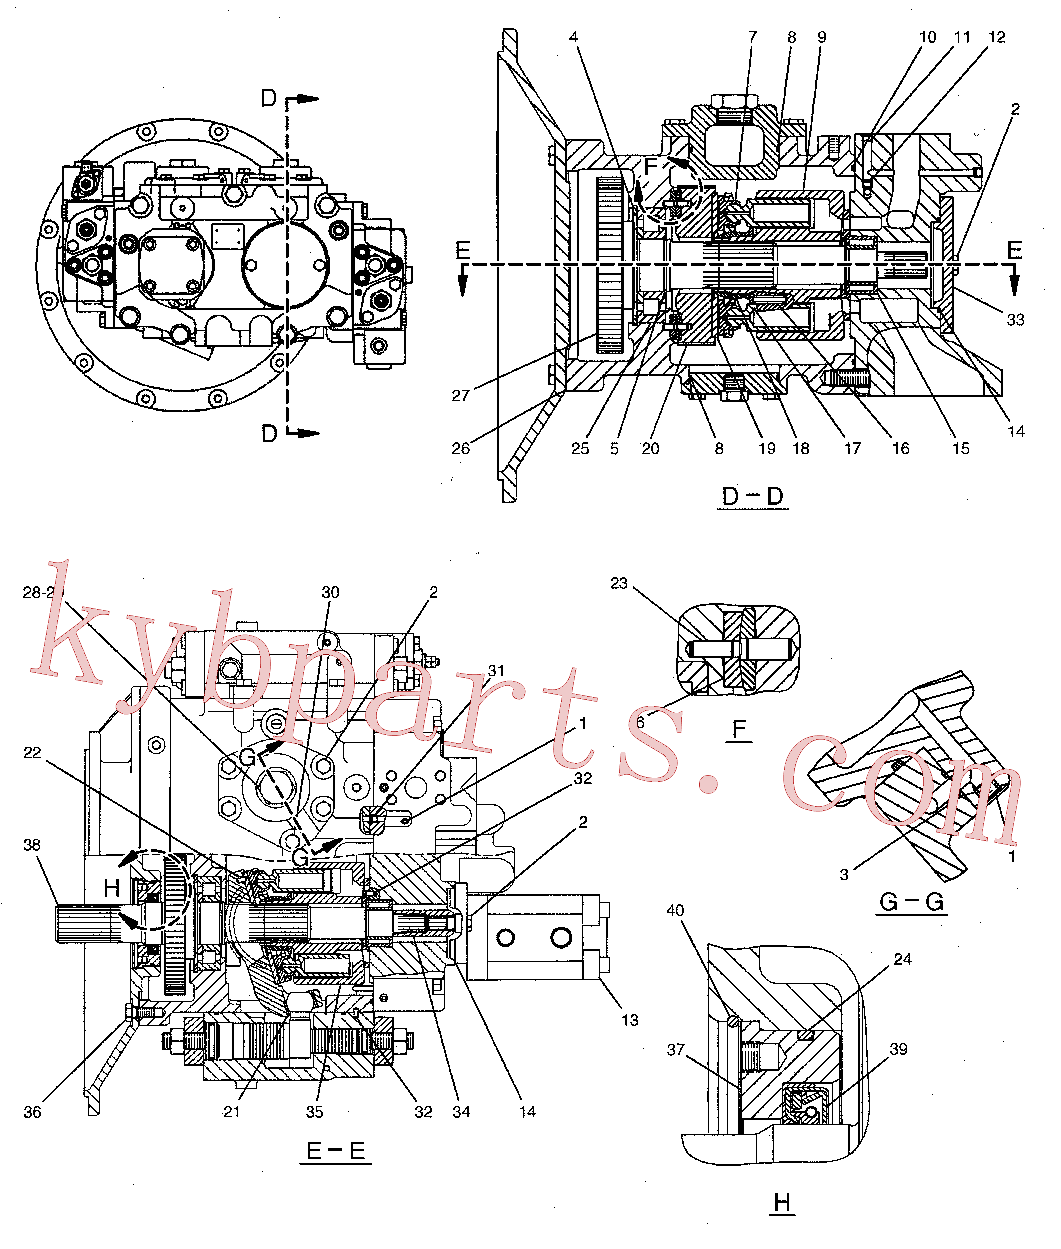 CAT 095-0946 for 326D2 Excavator(EXC) hydraulic system 244-8477 Assembly